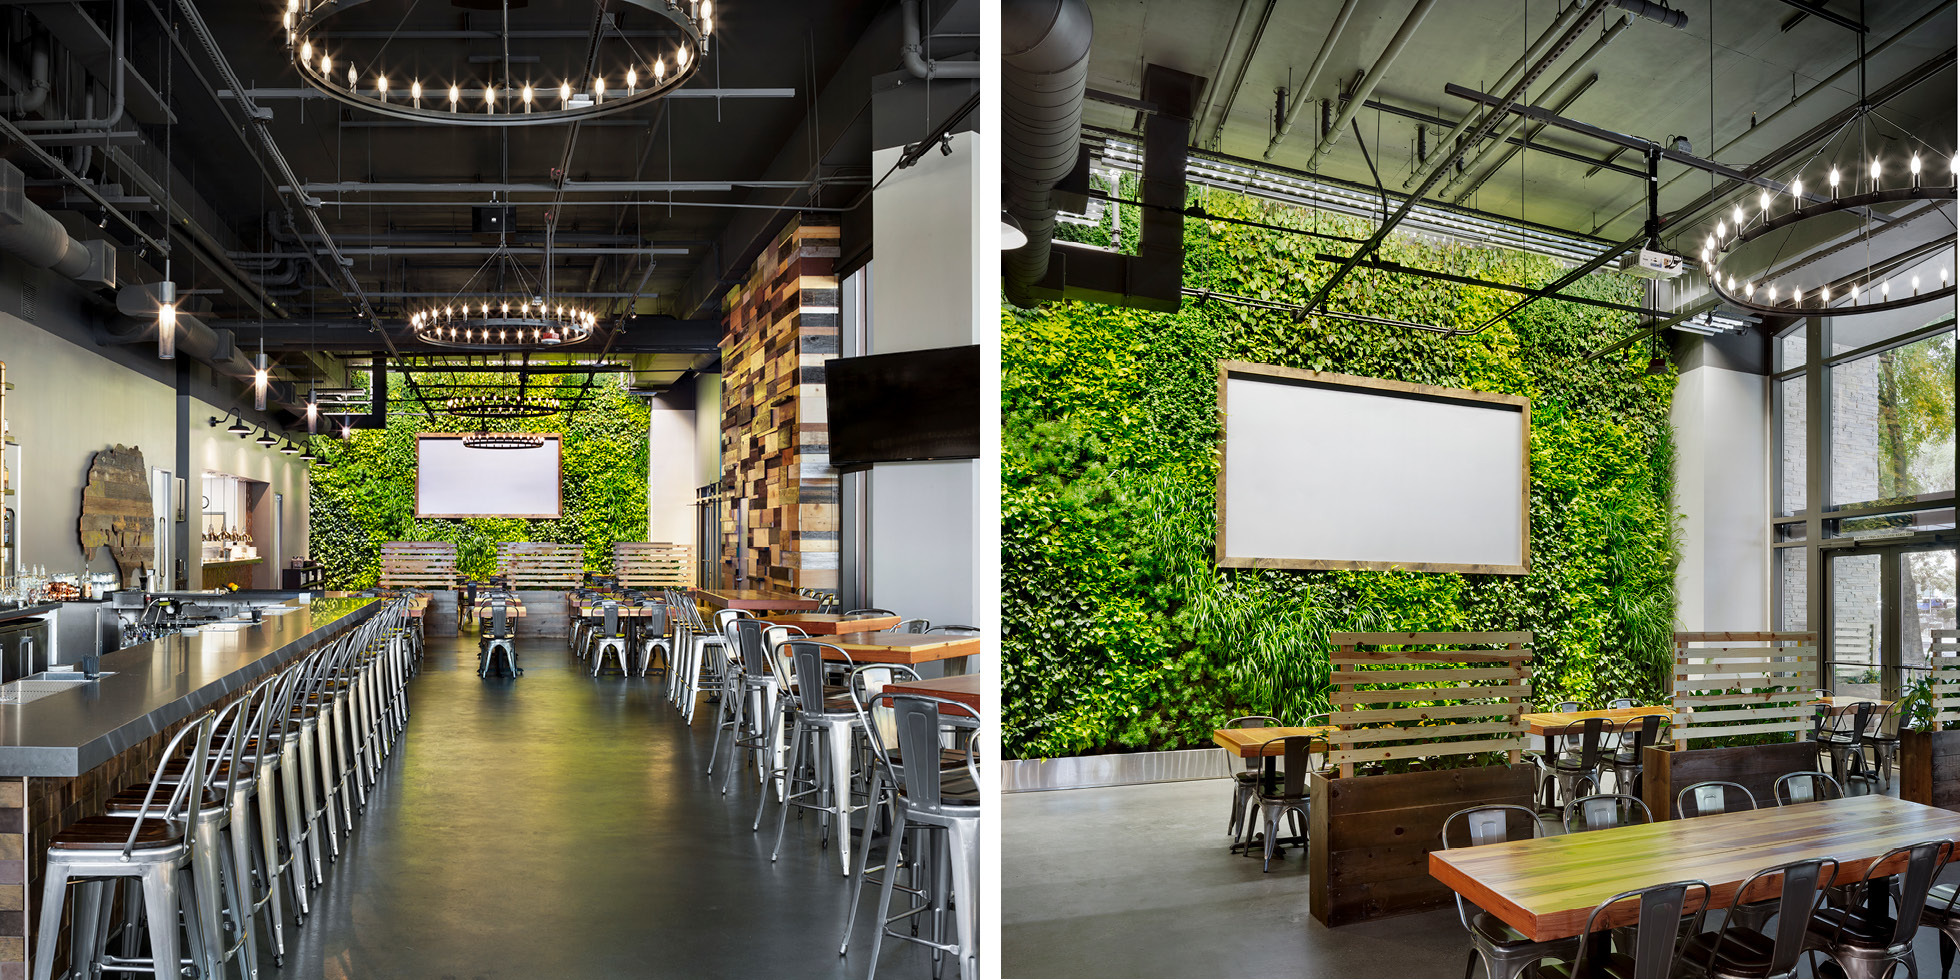 Steins Beer Garden Living Wall by Habitat Horticulture - View 2